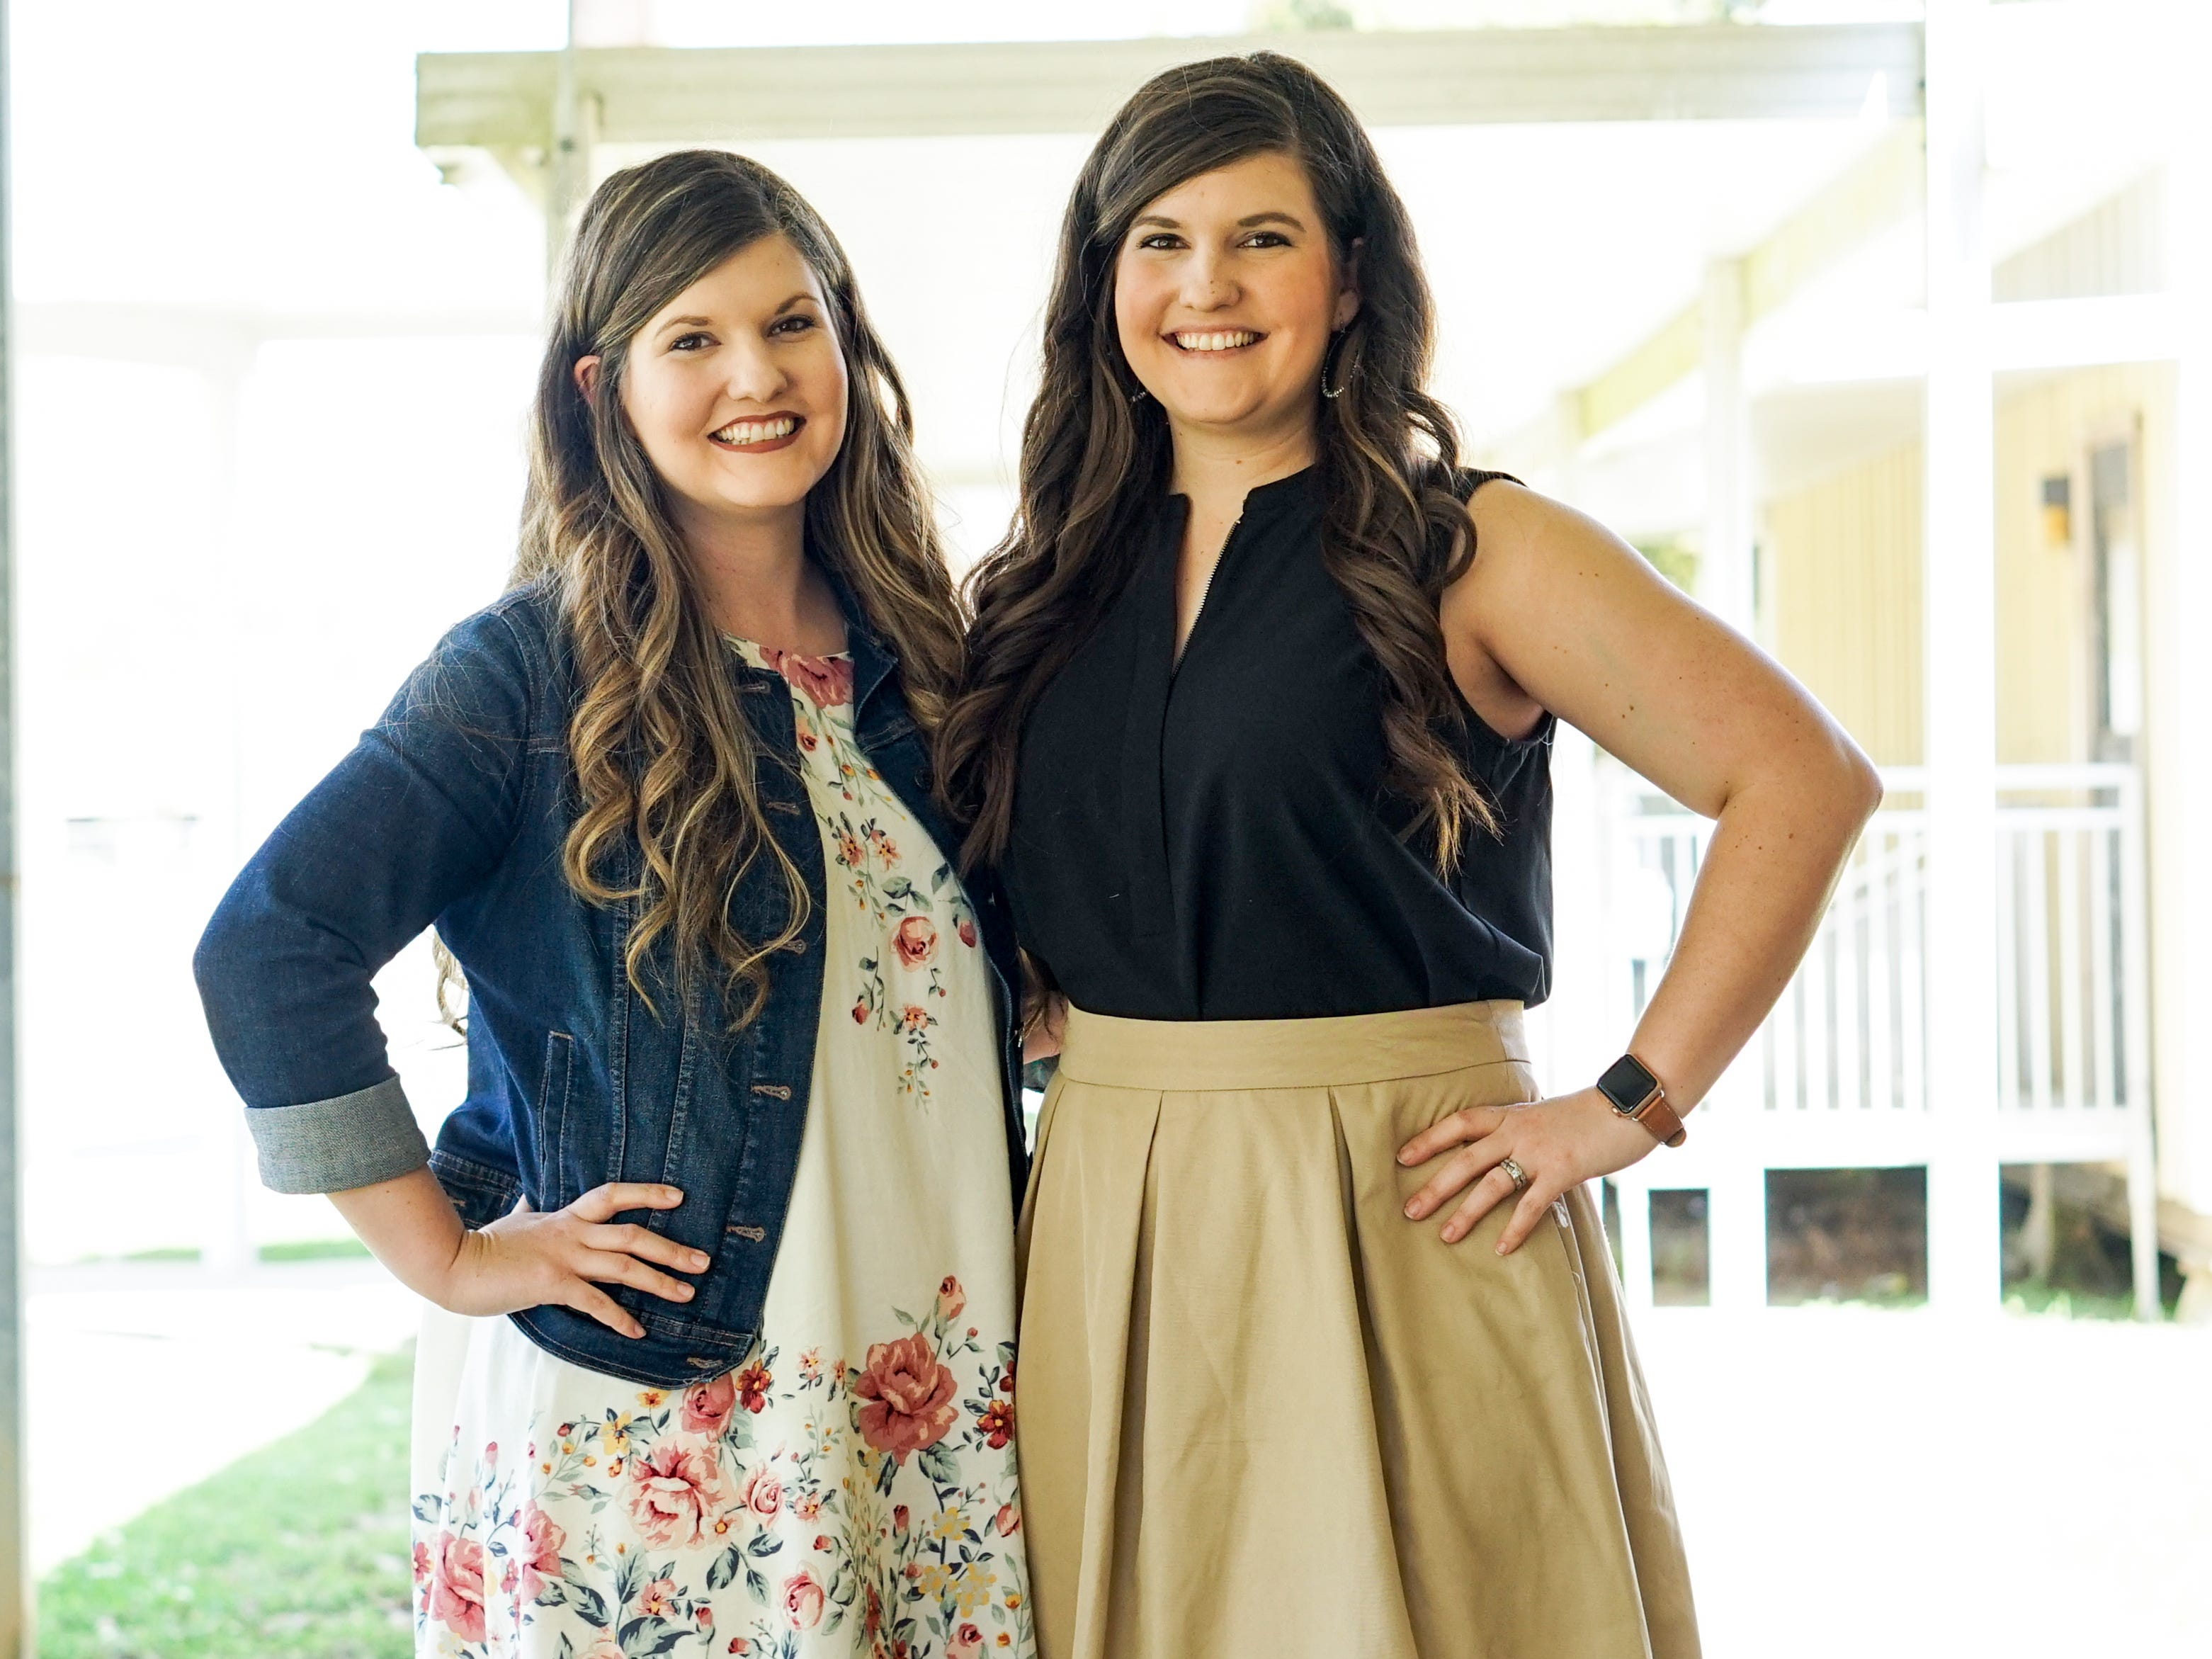 Twin sisters Taylor Wallace and Morgan Mercado share the same love for teaching at Woodvale Elementary School in Lafayette, Louisiana.